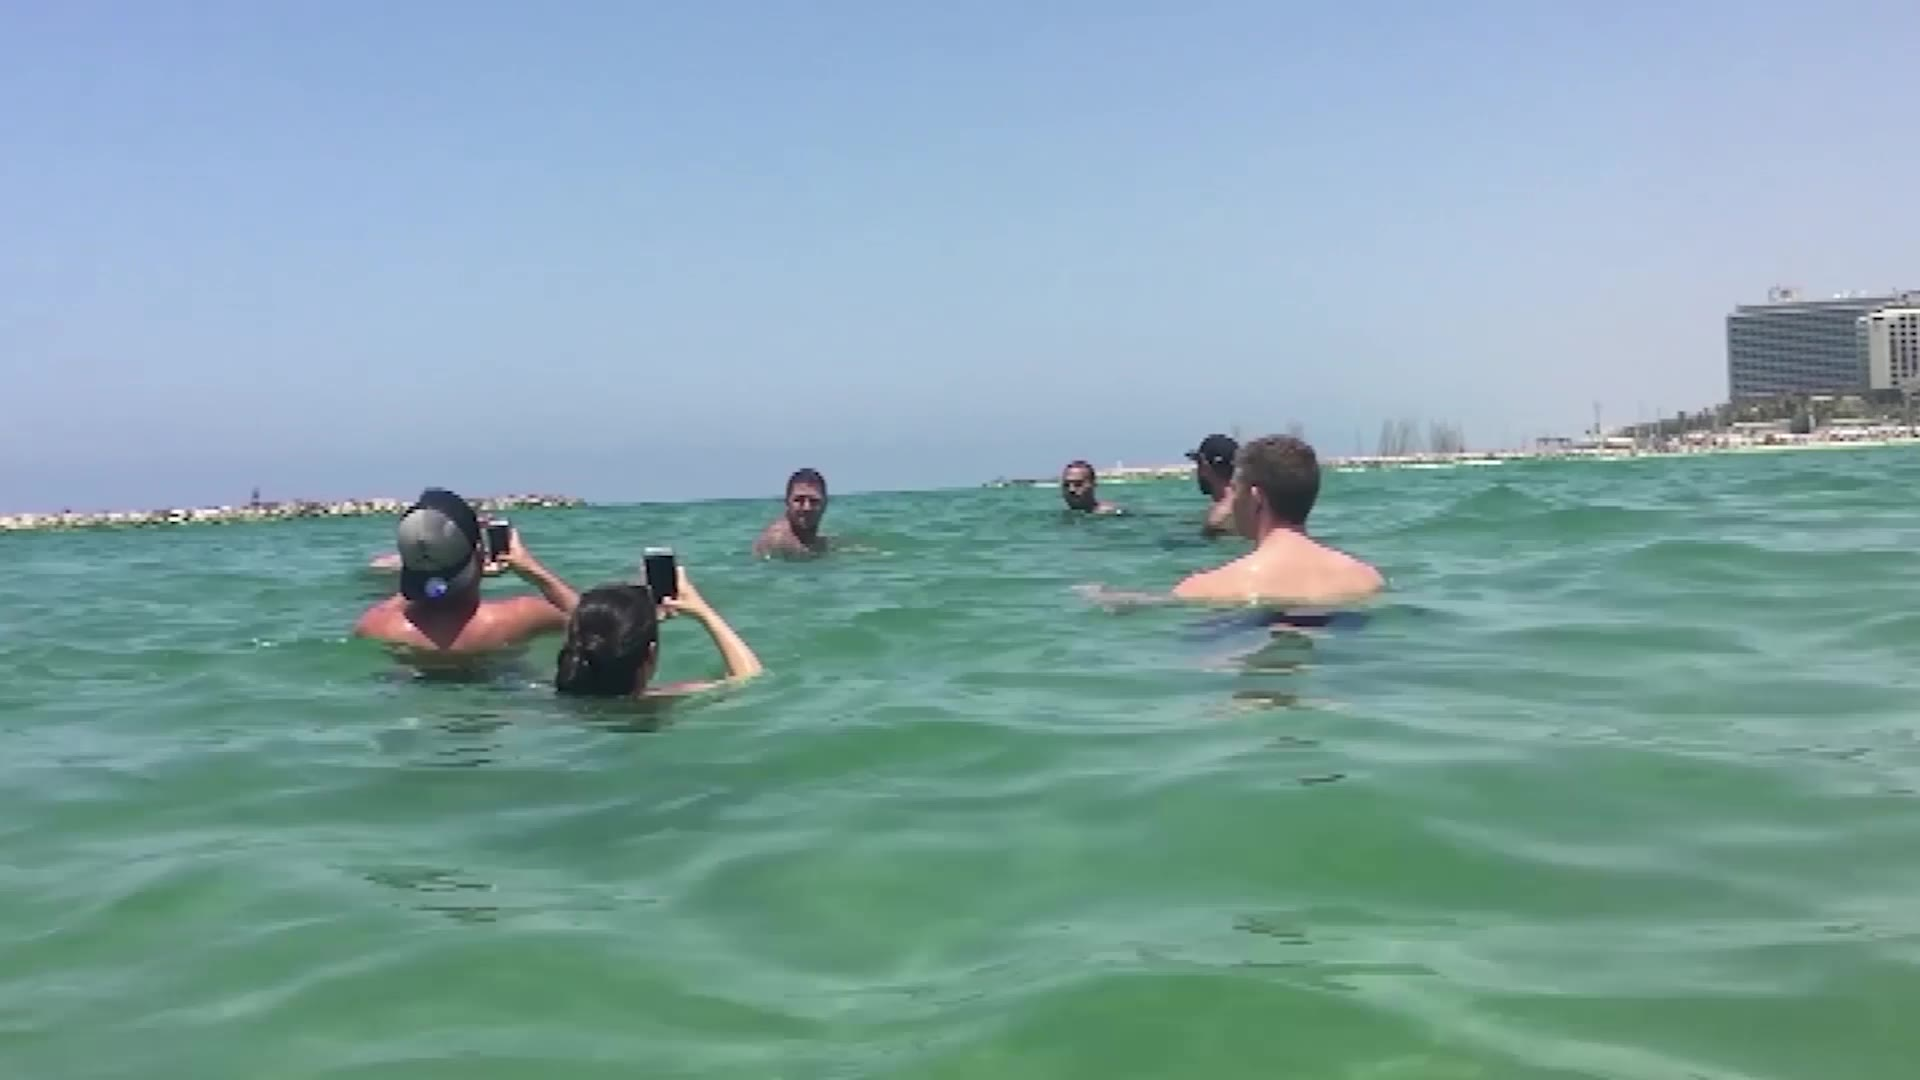 Chris Brown Has Fun With Fans On The Beach in Israel